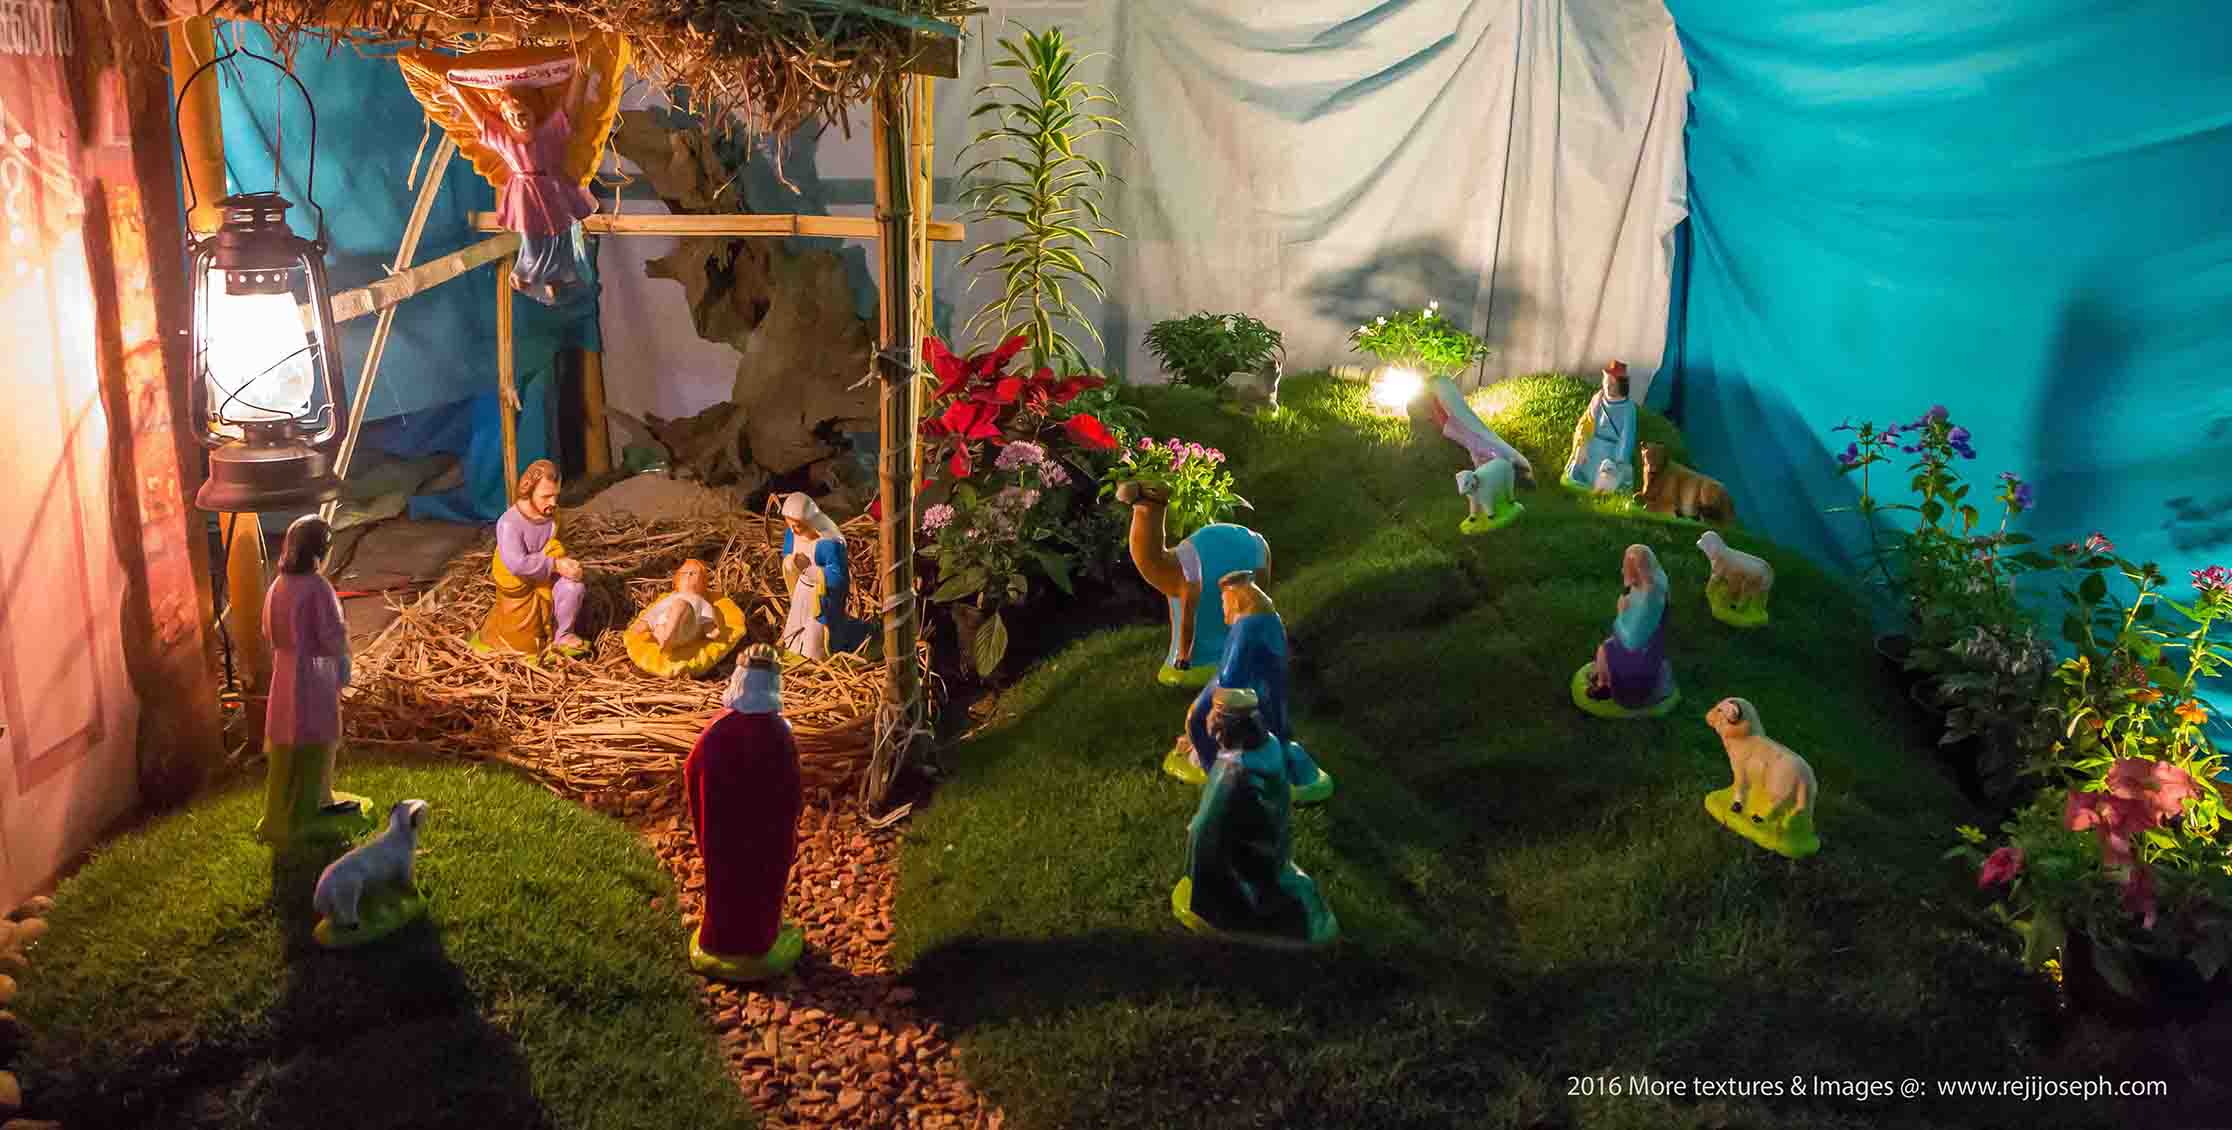 Christmas crib Pulkoodu St. George Forane Church Edappally 00012